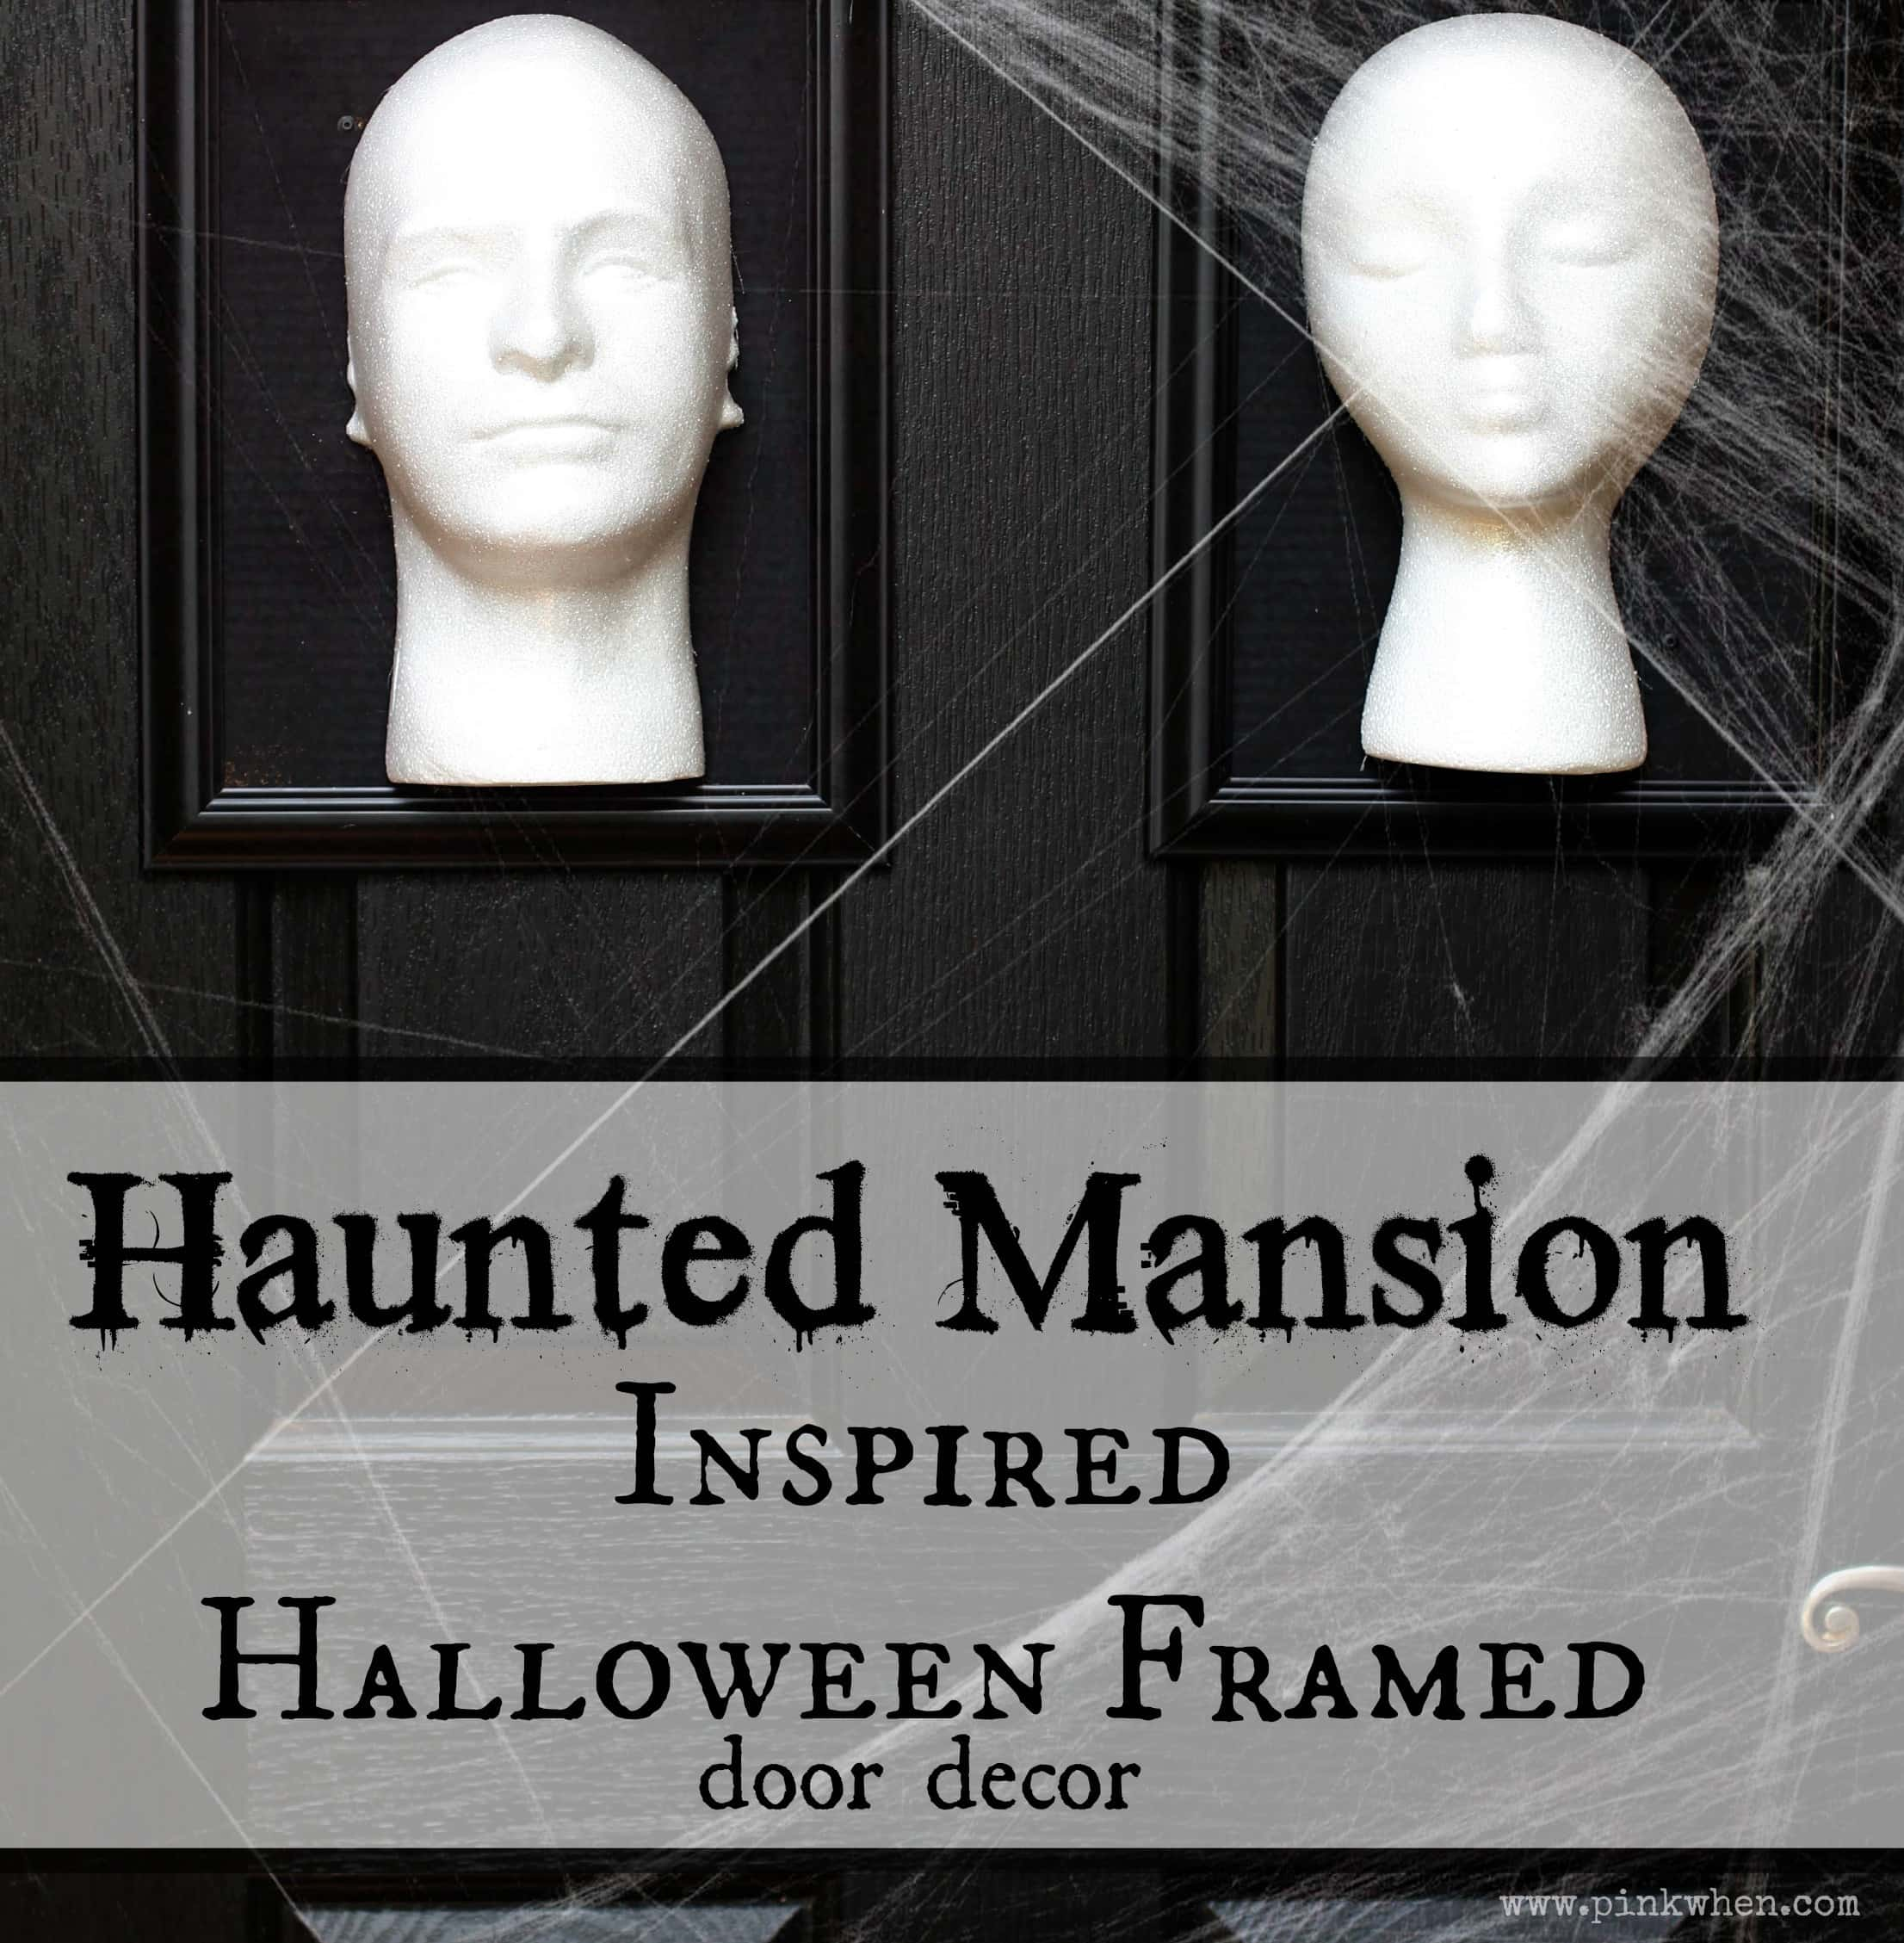 Haunted Mansion Inspired Halloween Framed 3D Door Decor